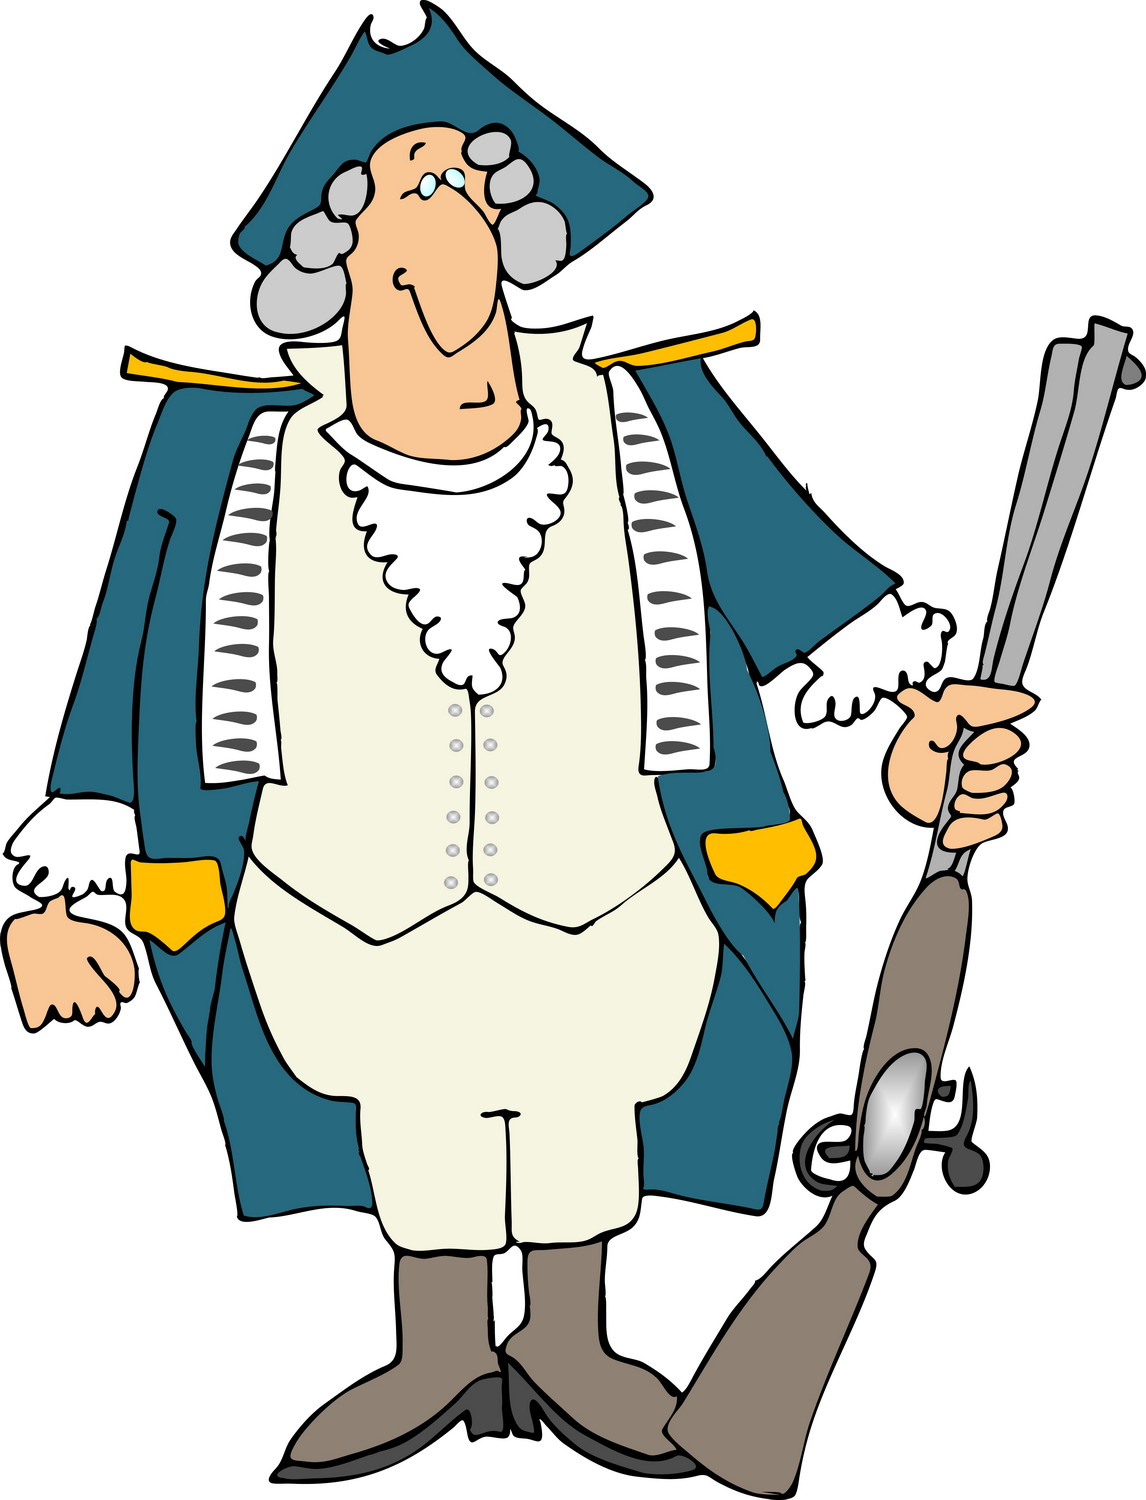 Common Gunsense A blog to advocate for sensible gun ... American Revolution Soldier Clipart